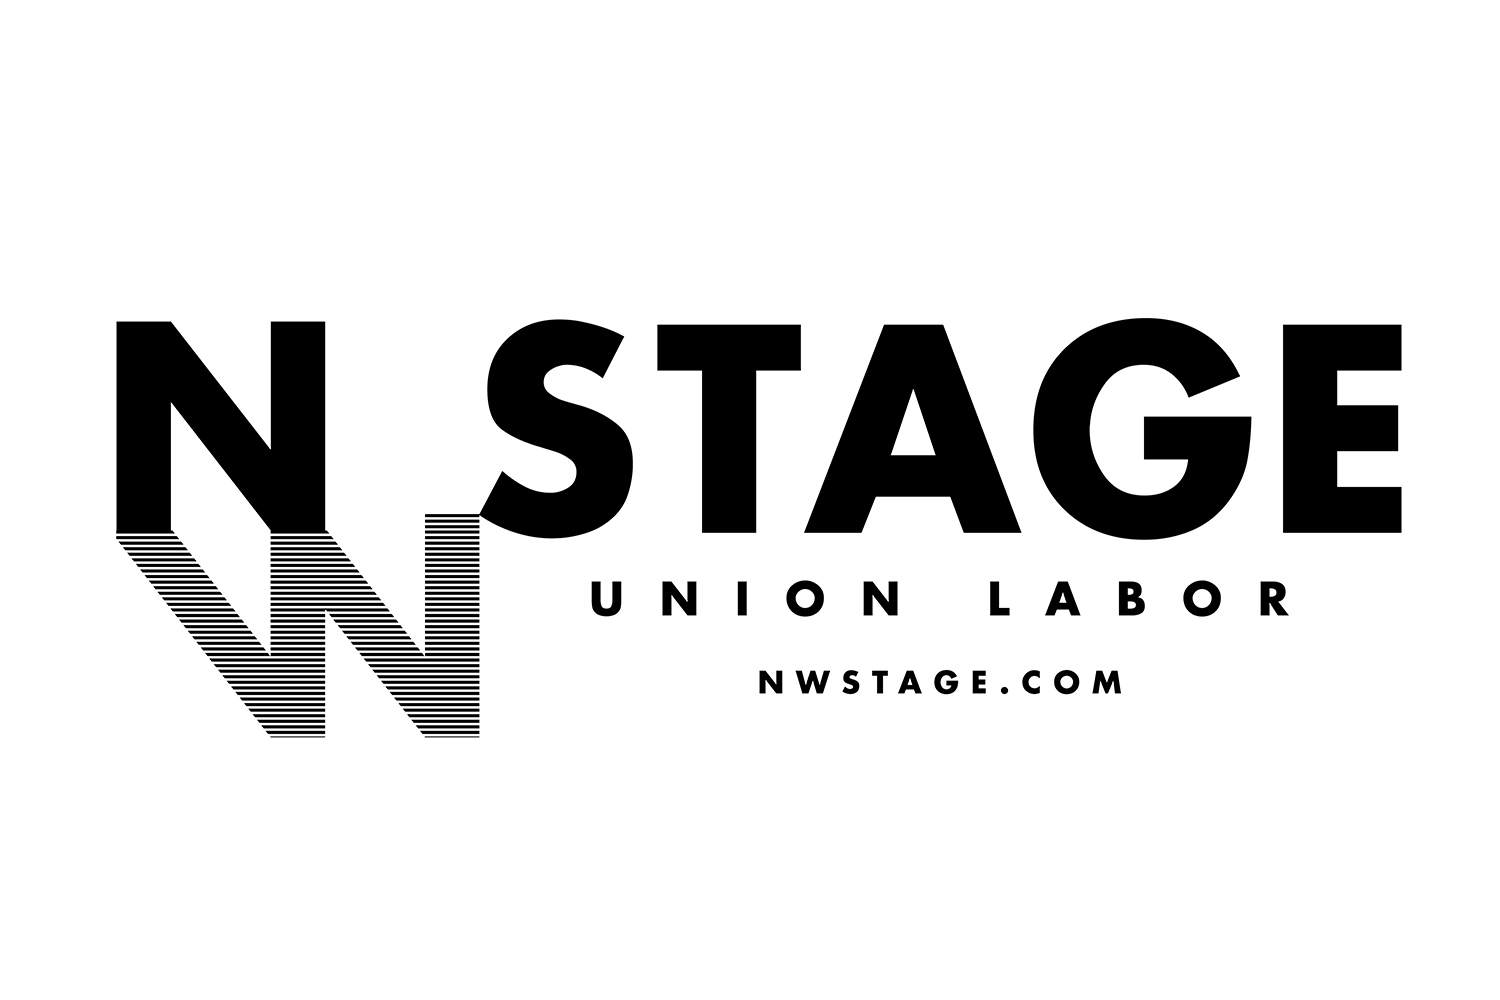 NW Stage